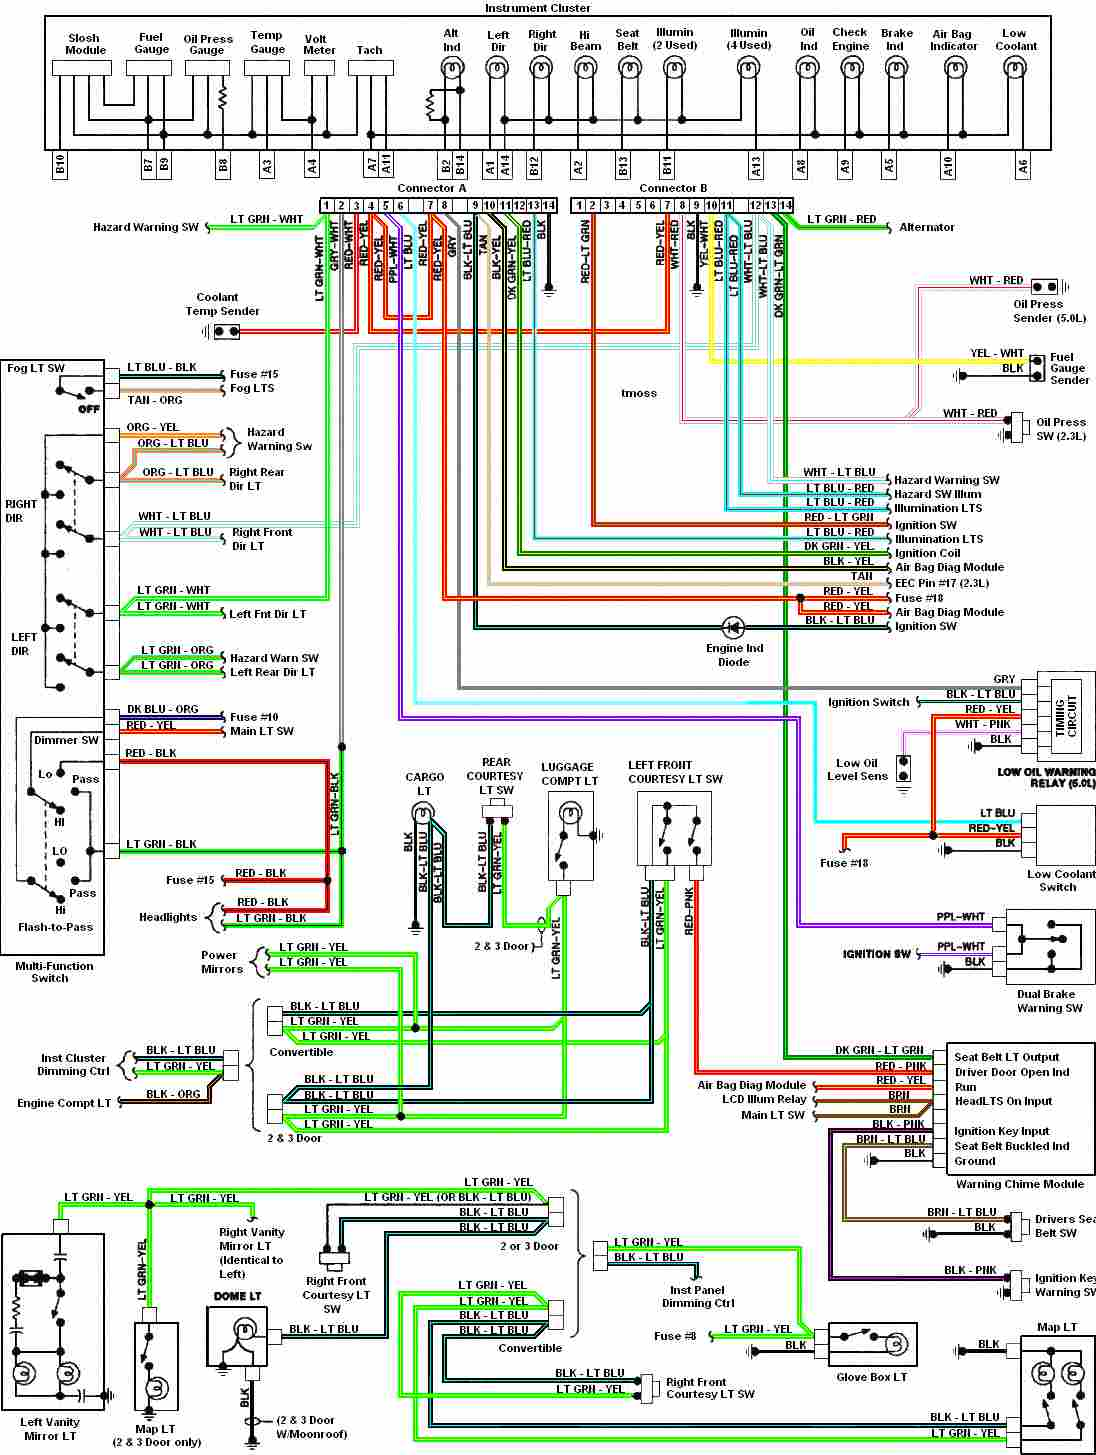 76 Ford F100 Truck Wiring Diagram further Wiring in addition 04 Jeep 4 0 Engine Schematic furthermore P 0900c152801c8670 further 859761 Need 57 F100 Custom Cab Wiring Diagram. on 1973 gm headlight switch schematic